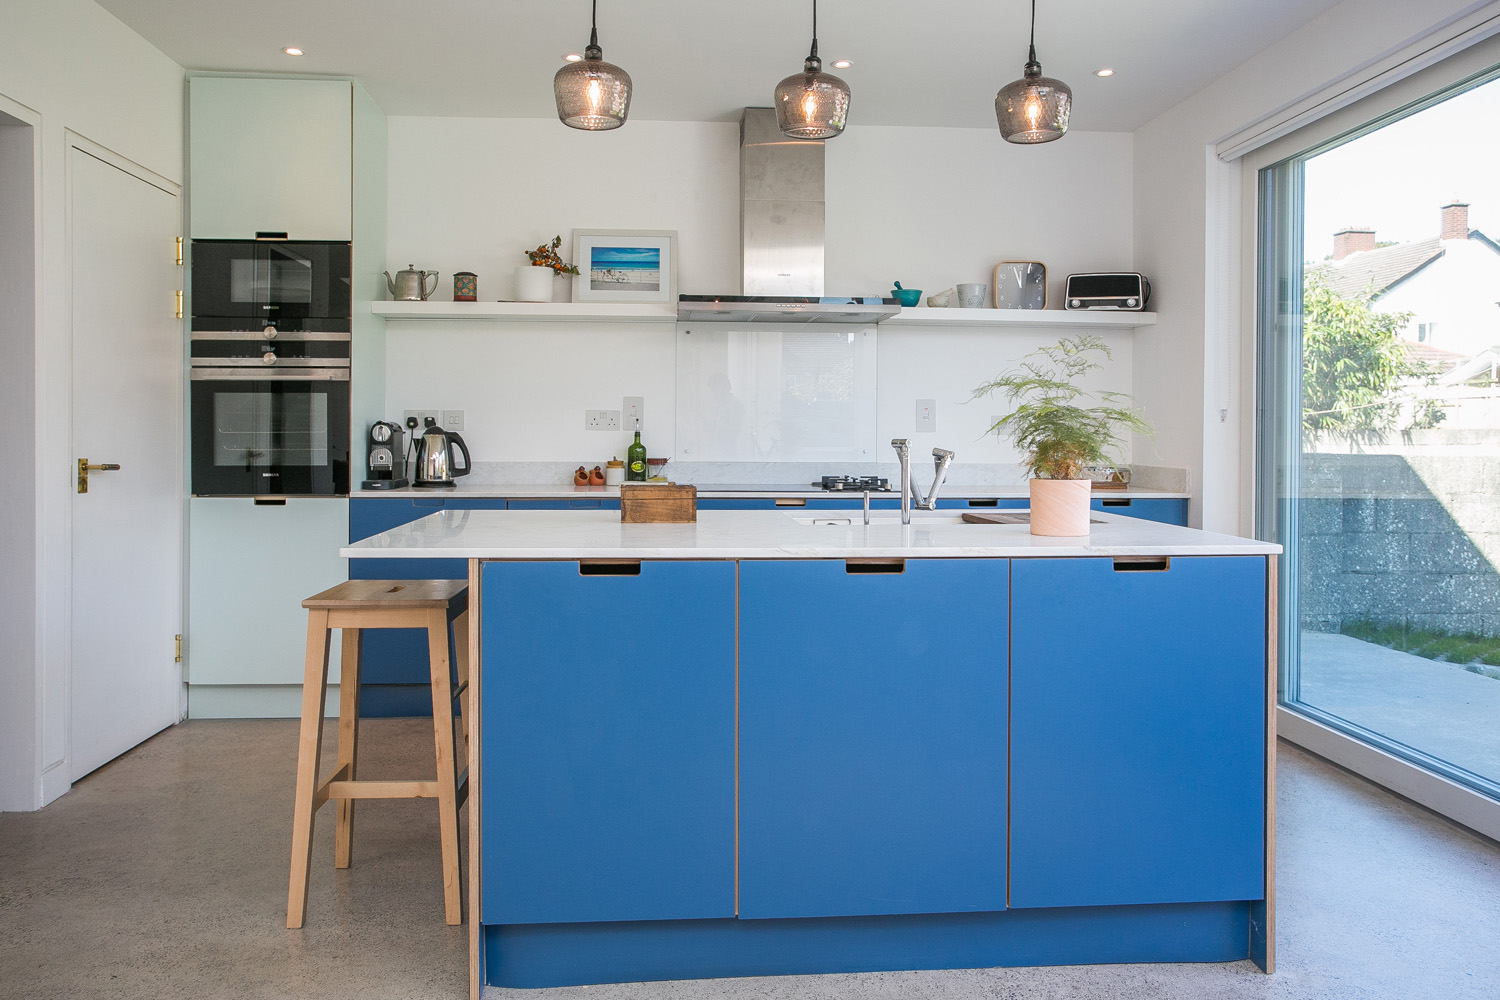 Watermill-raheny-kitchen-island.jpg